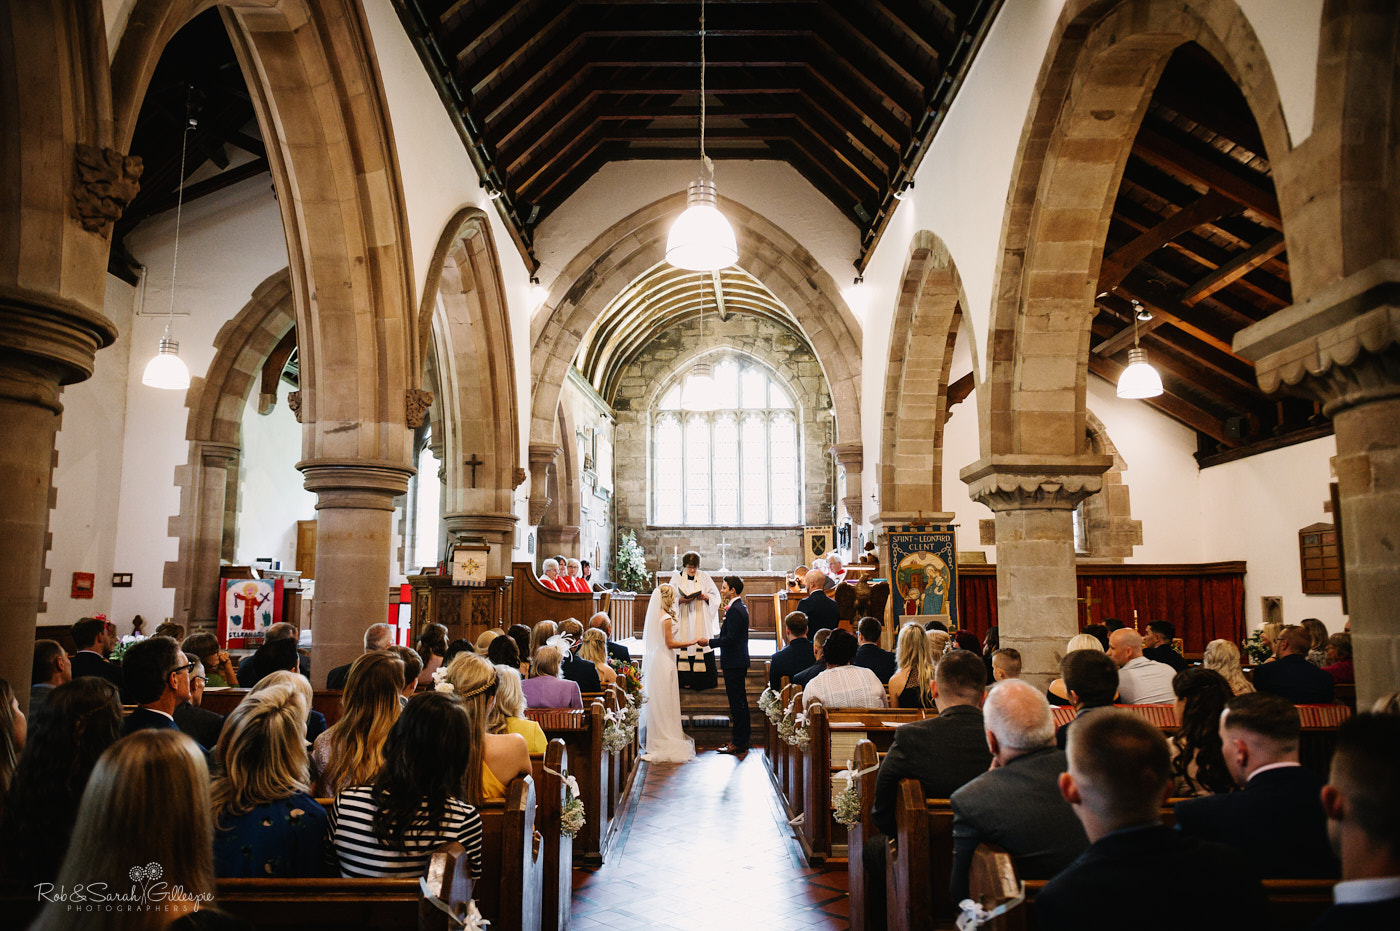 Wedding ceremony in St Leonar'ds church in Clent, Worcestershire